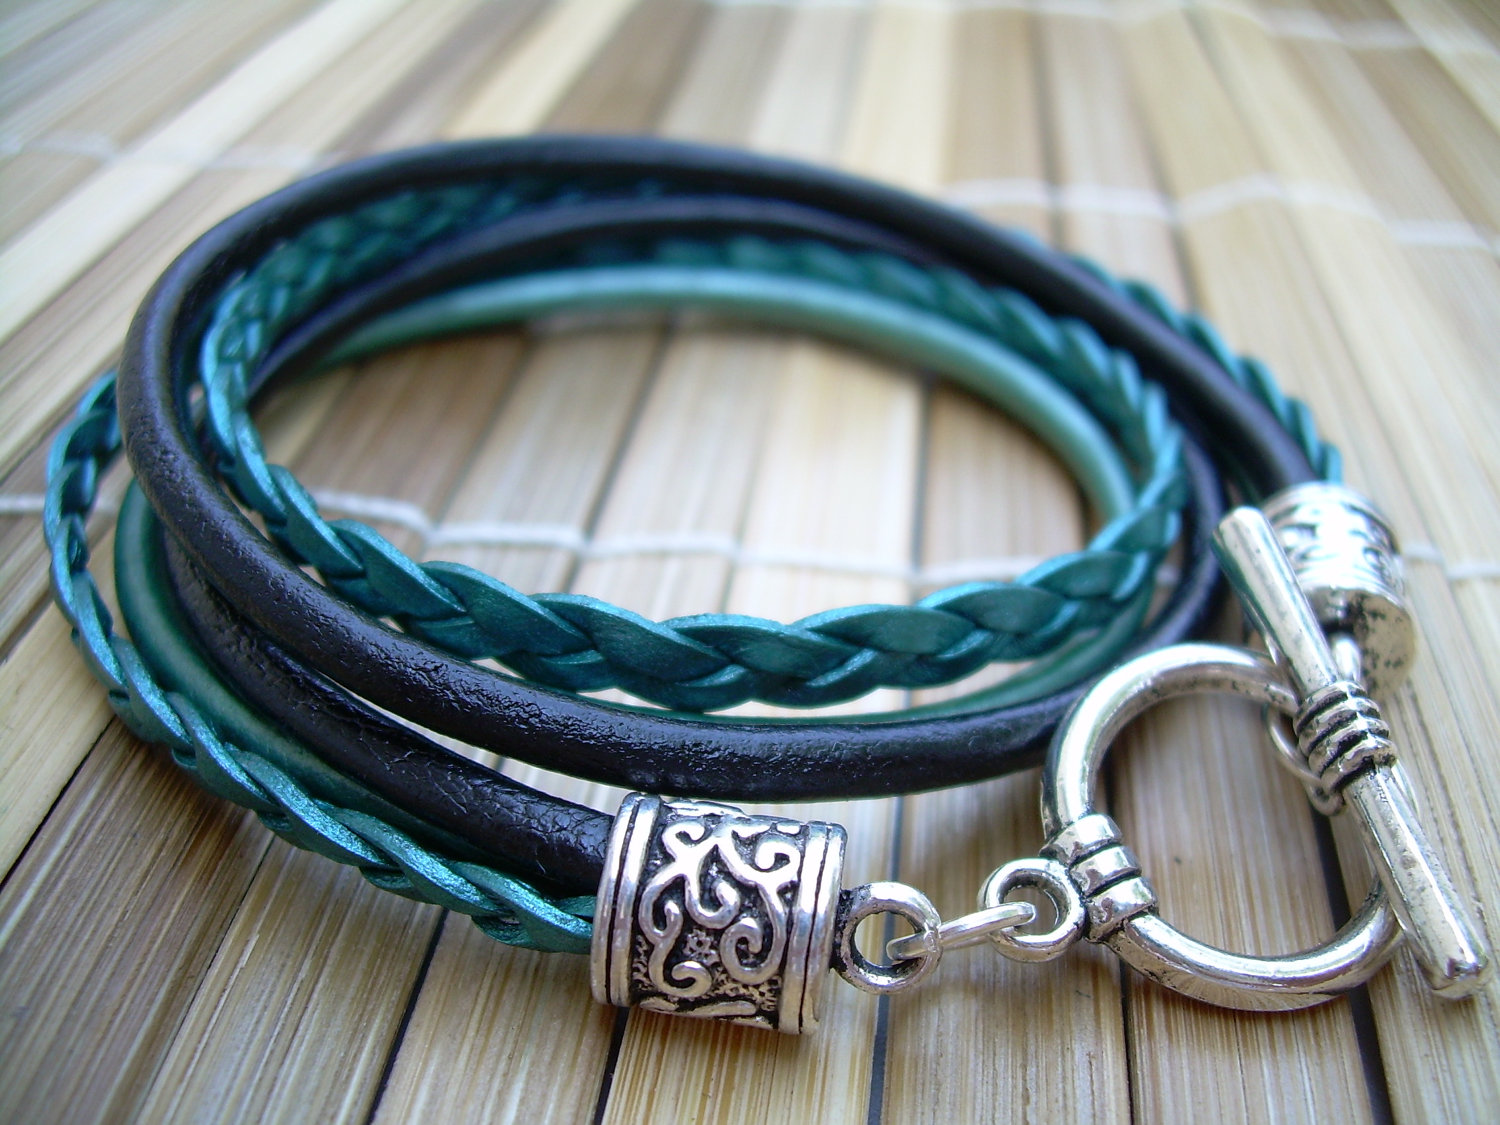 Womens Leather Bracelet Toggle Closure Metallic Teal And Black Double Wrap Jewelry